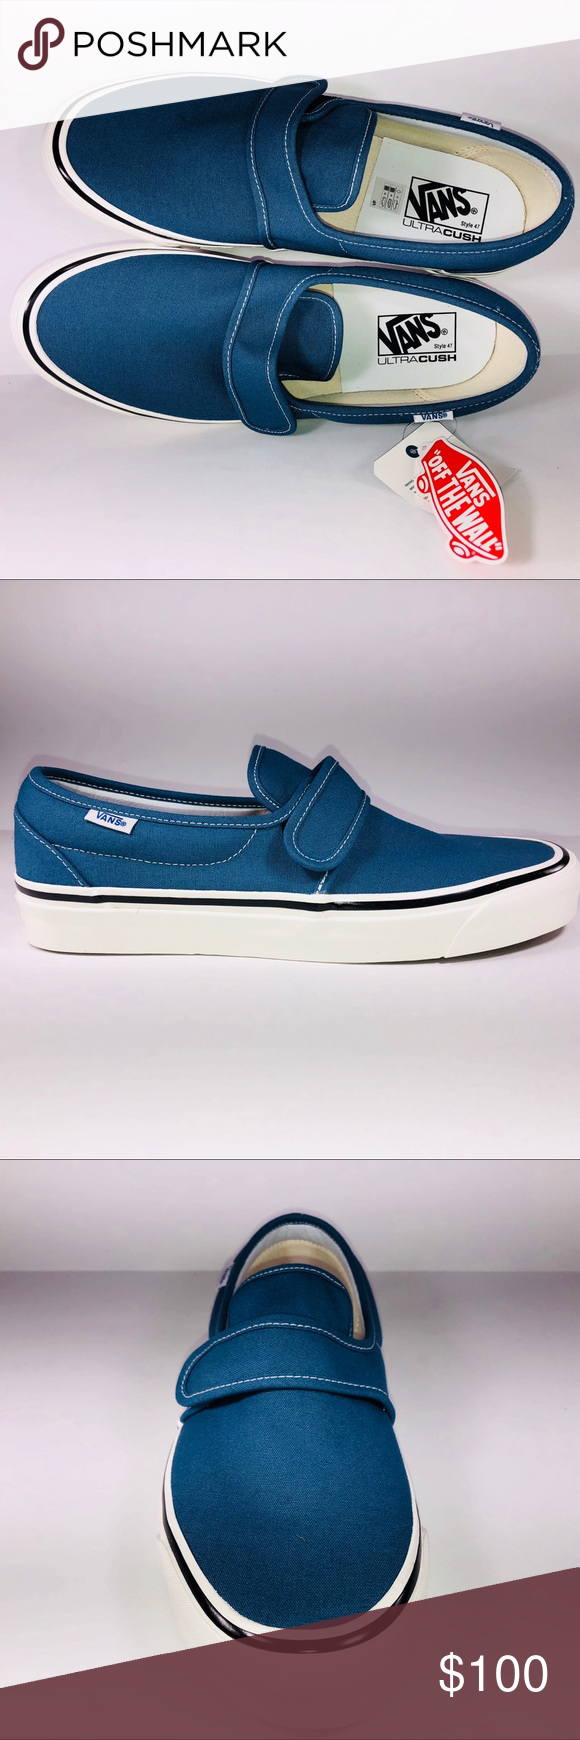 d4d6b22504 VANS Slip On 47 DX Anaheim Factory OG Navy Sneaker New With Box See  Pictures For